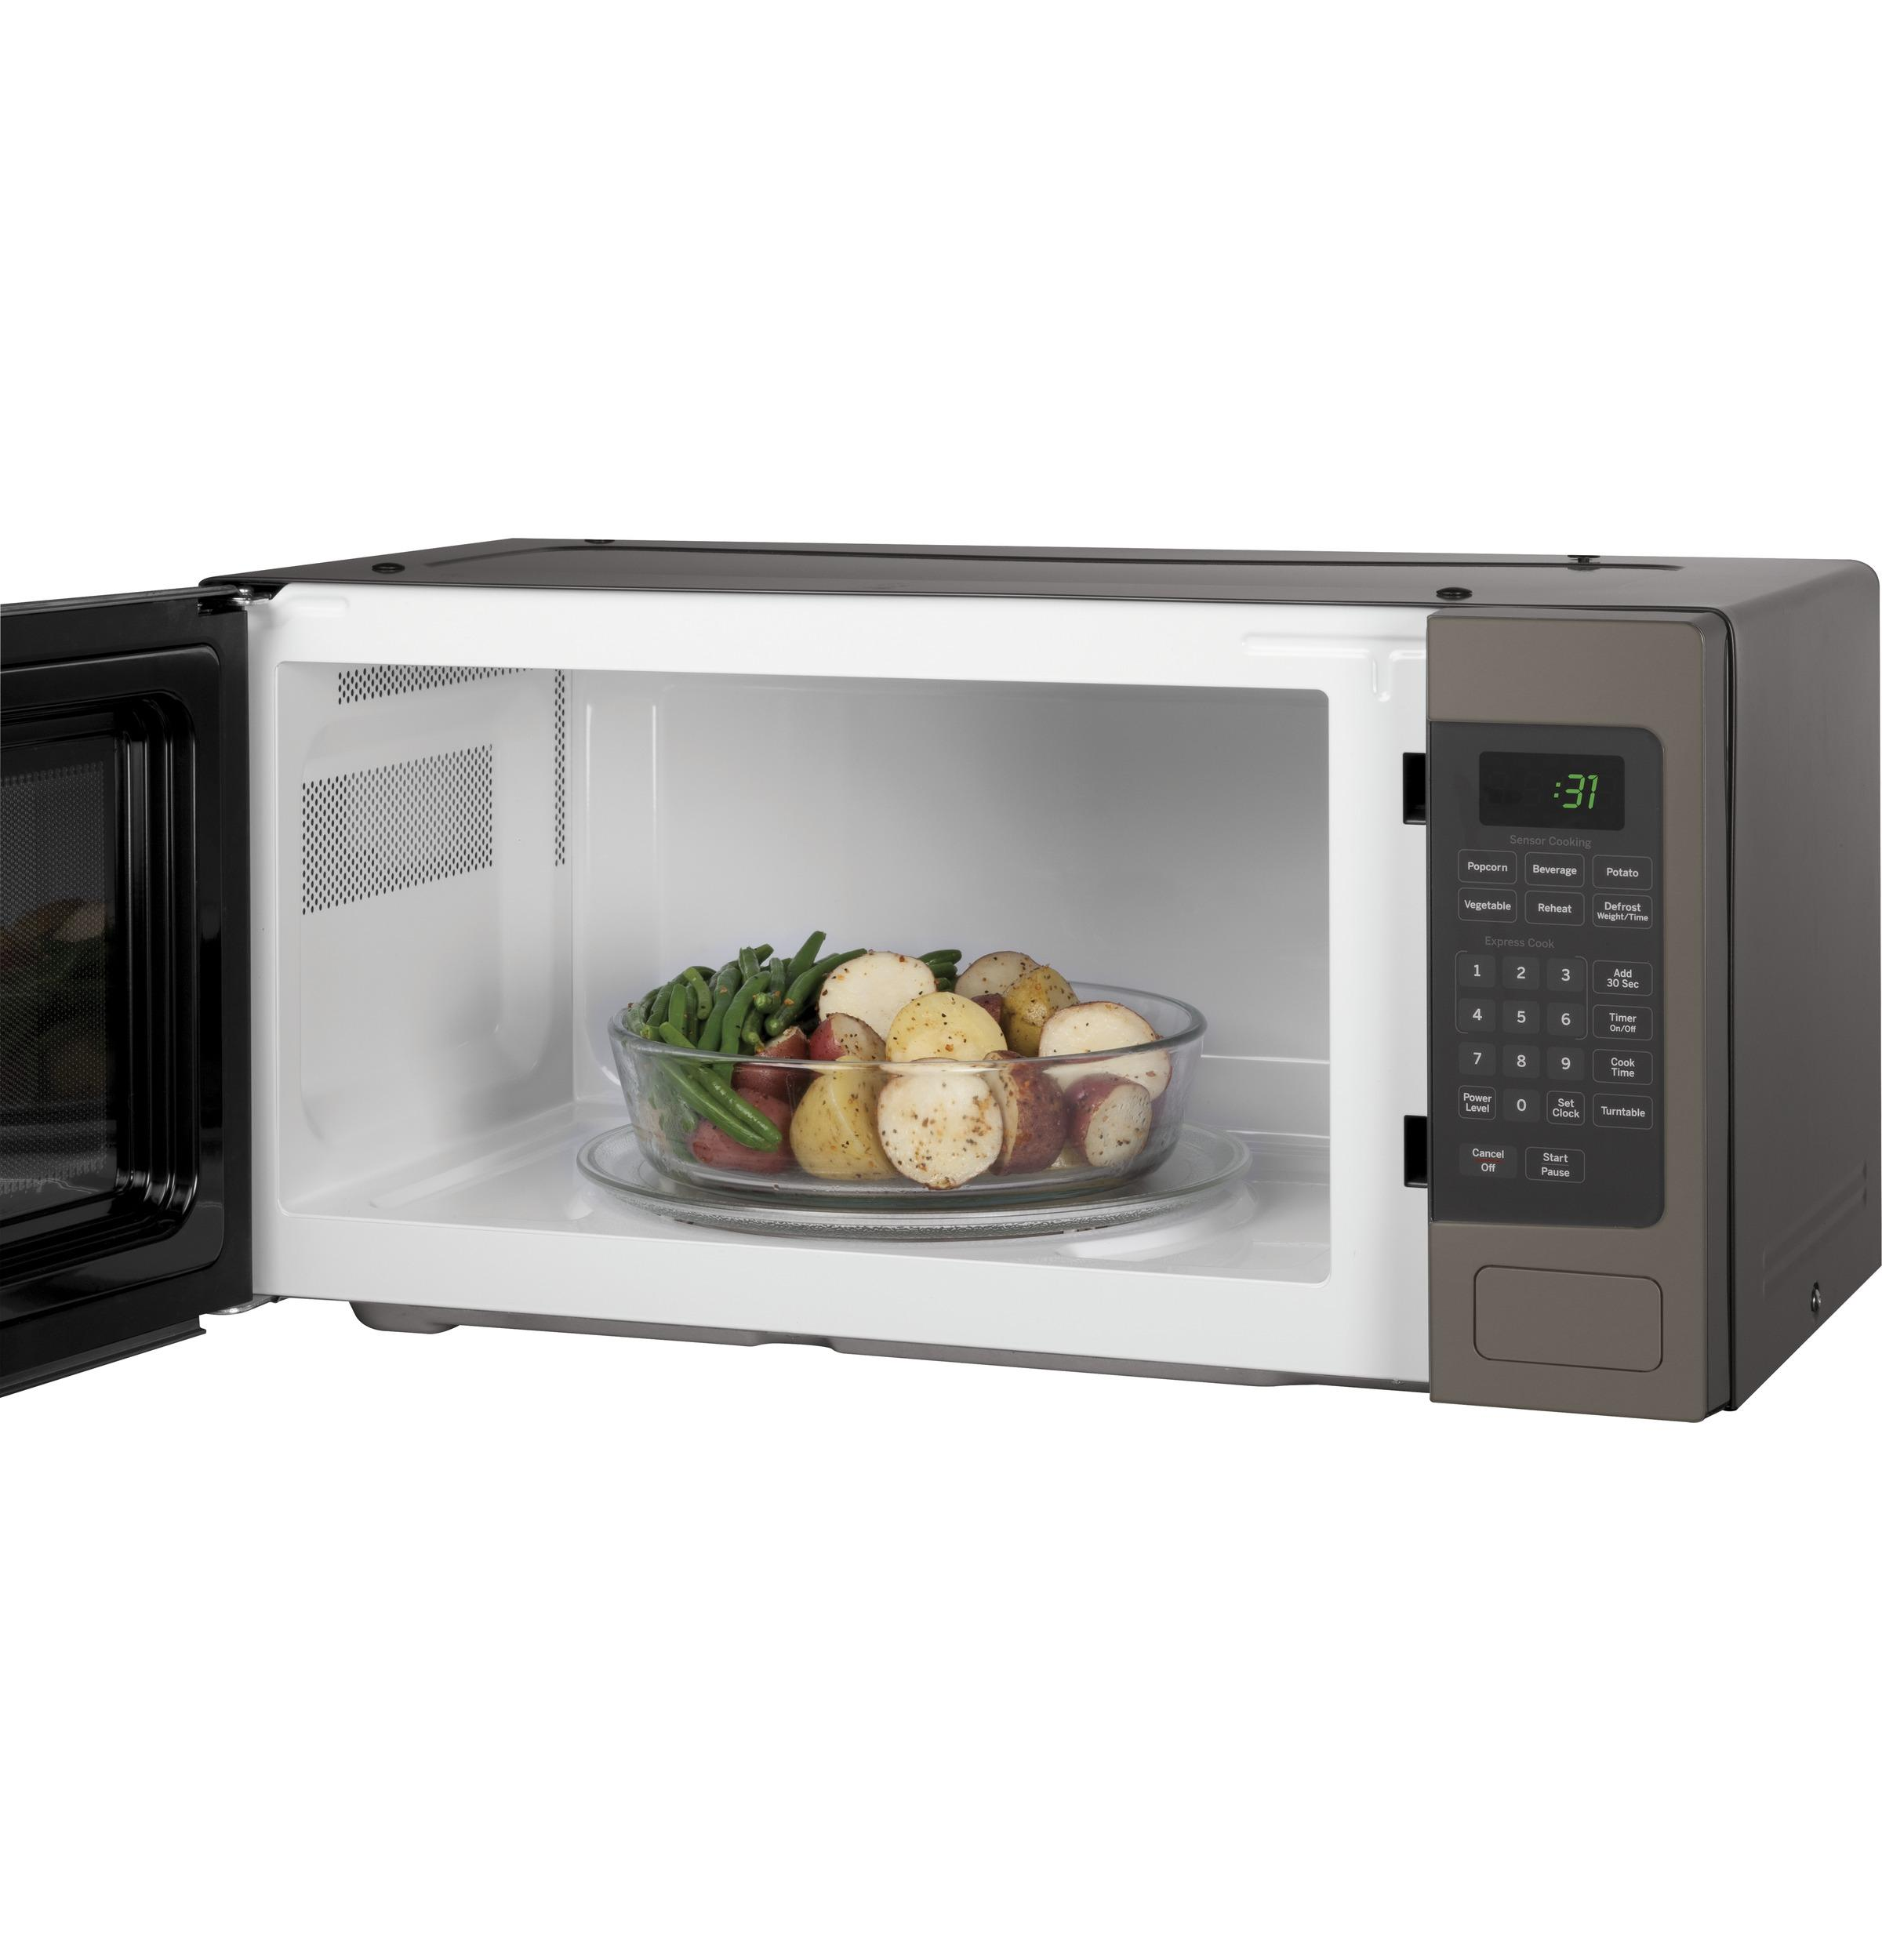 Countertop Microwave In Bisque Color : PEM31DFCC Ge pem31dfcc Profile Countertop Microwaves Bisque